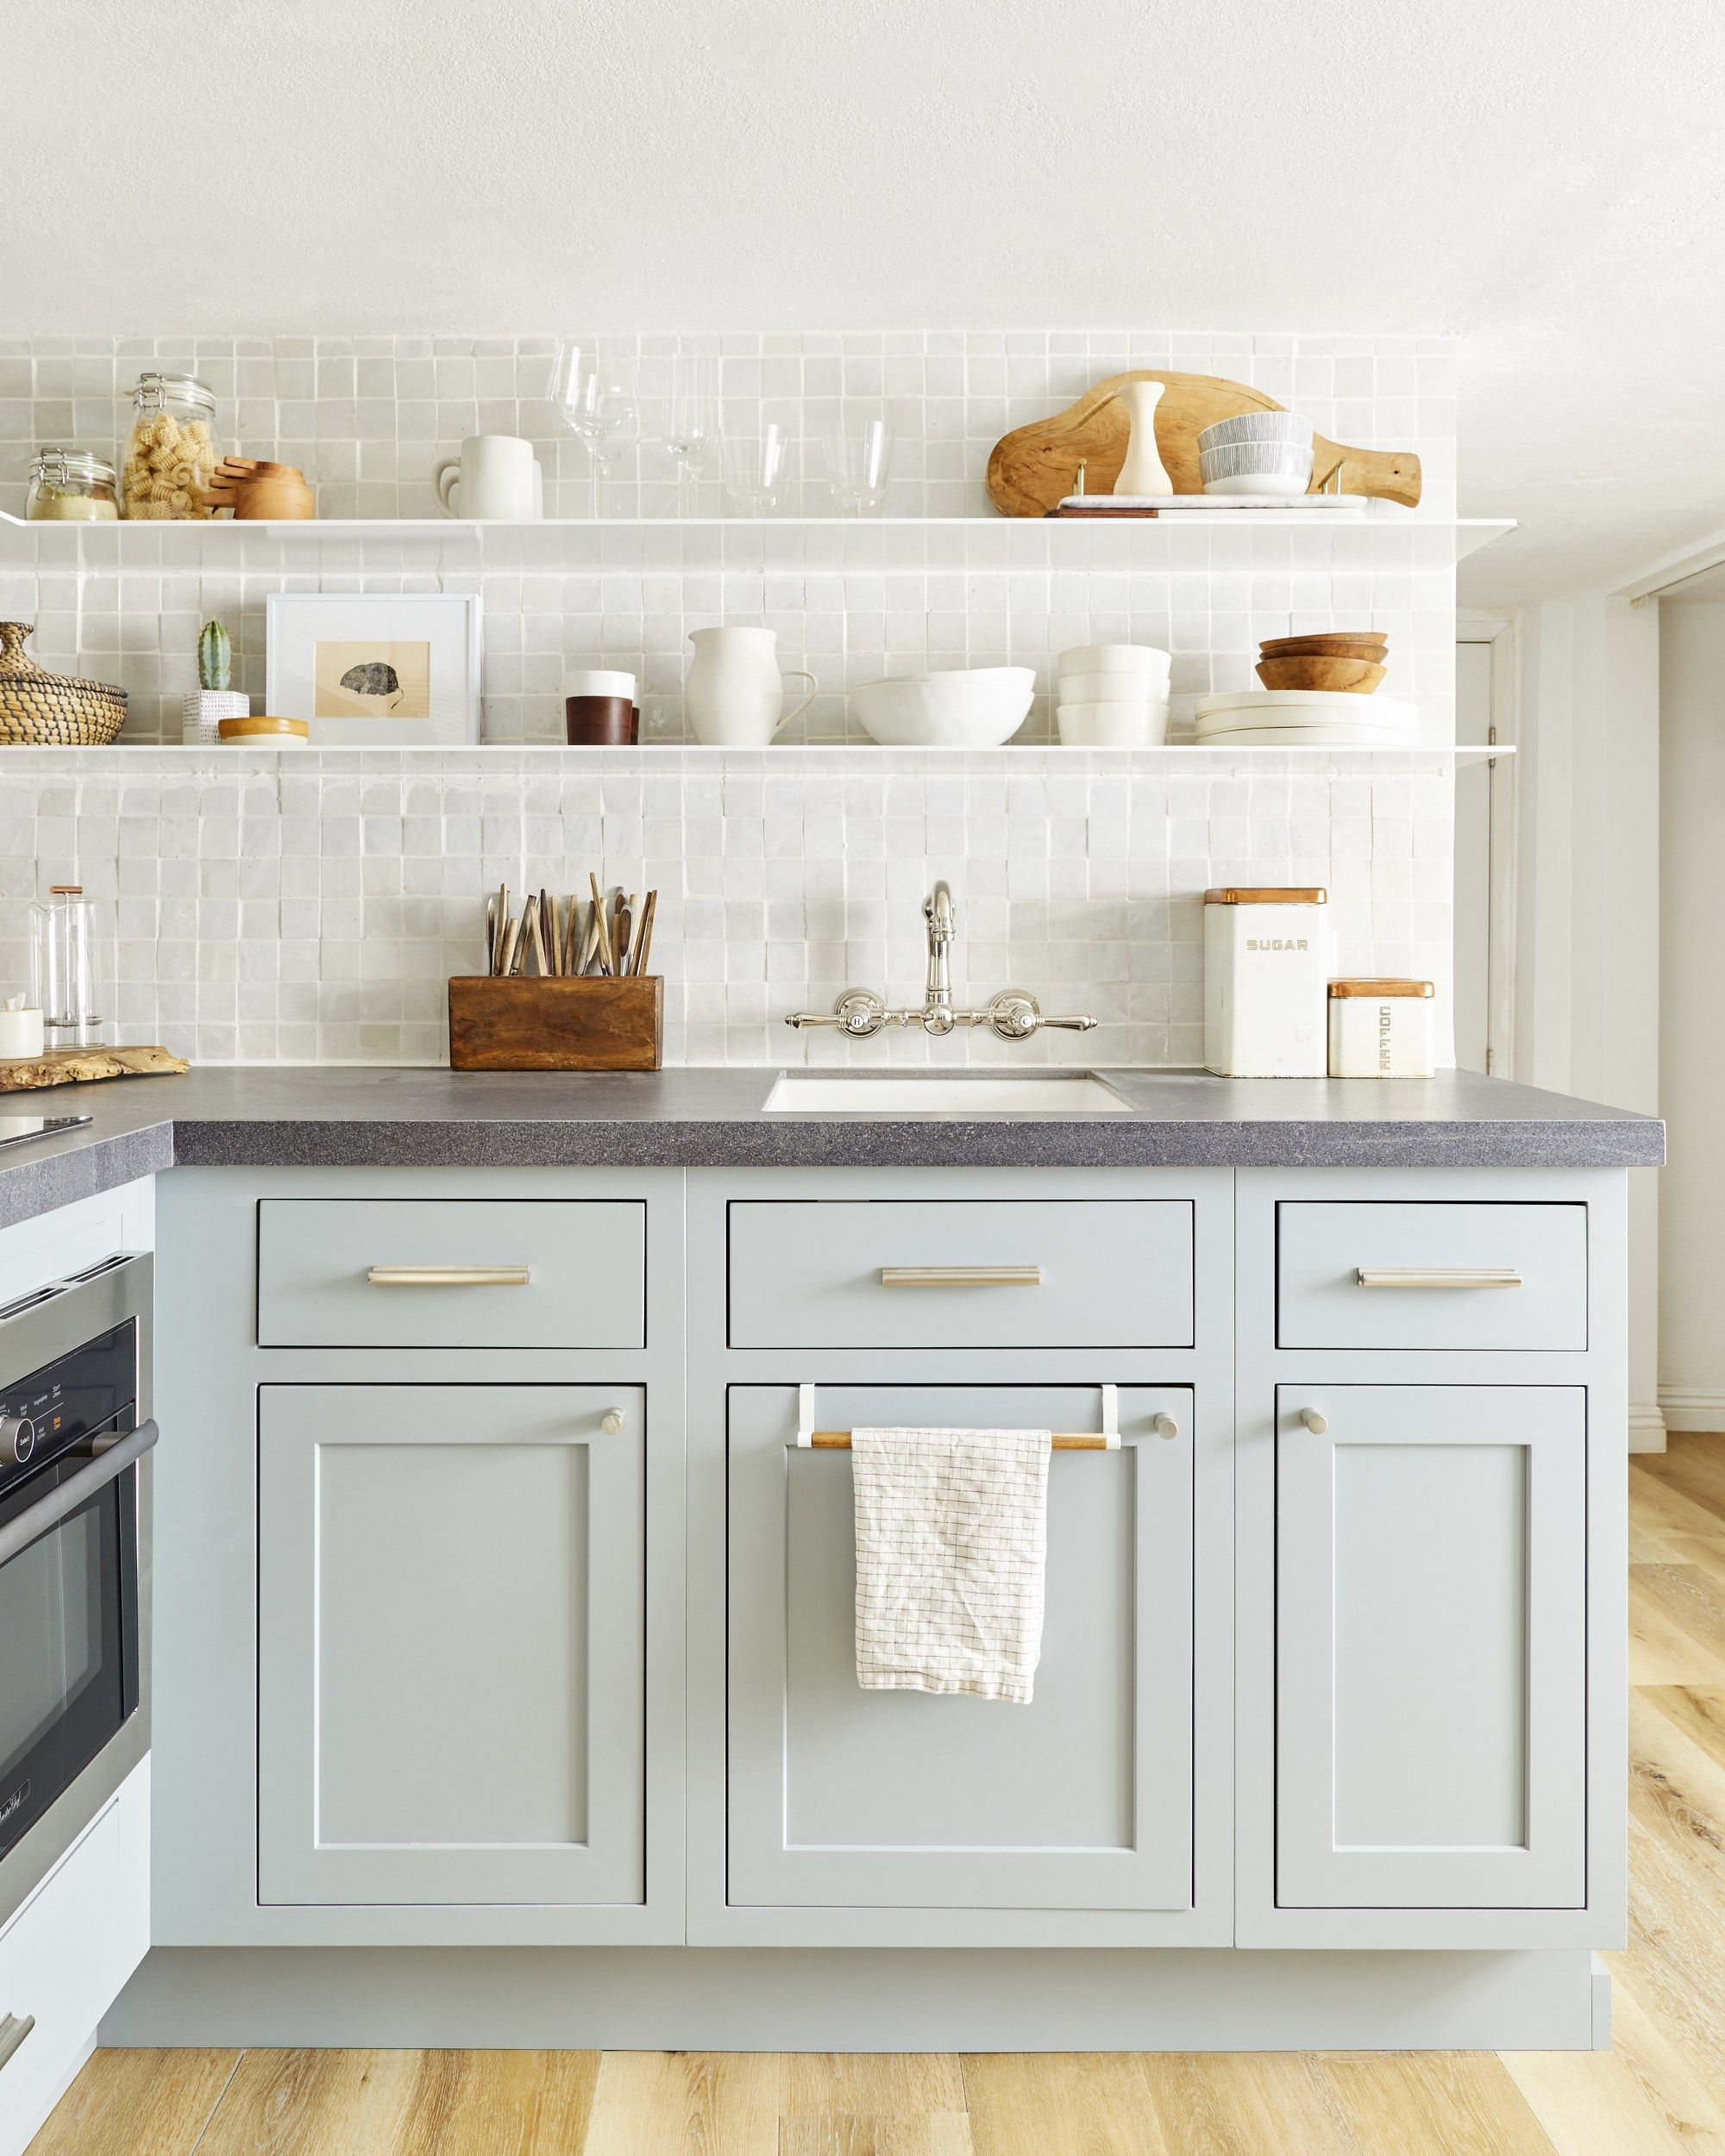 The Kitchen Renovation Cost In 2019 Is Way Higher Than Last Year Kitchen Renovation Cost Green Kitchen Cabinets Kitchen Cabinet Colors